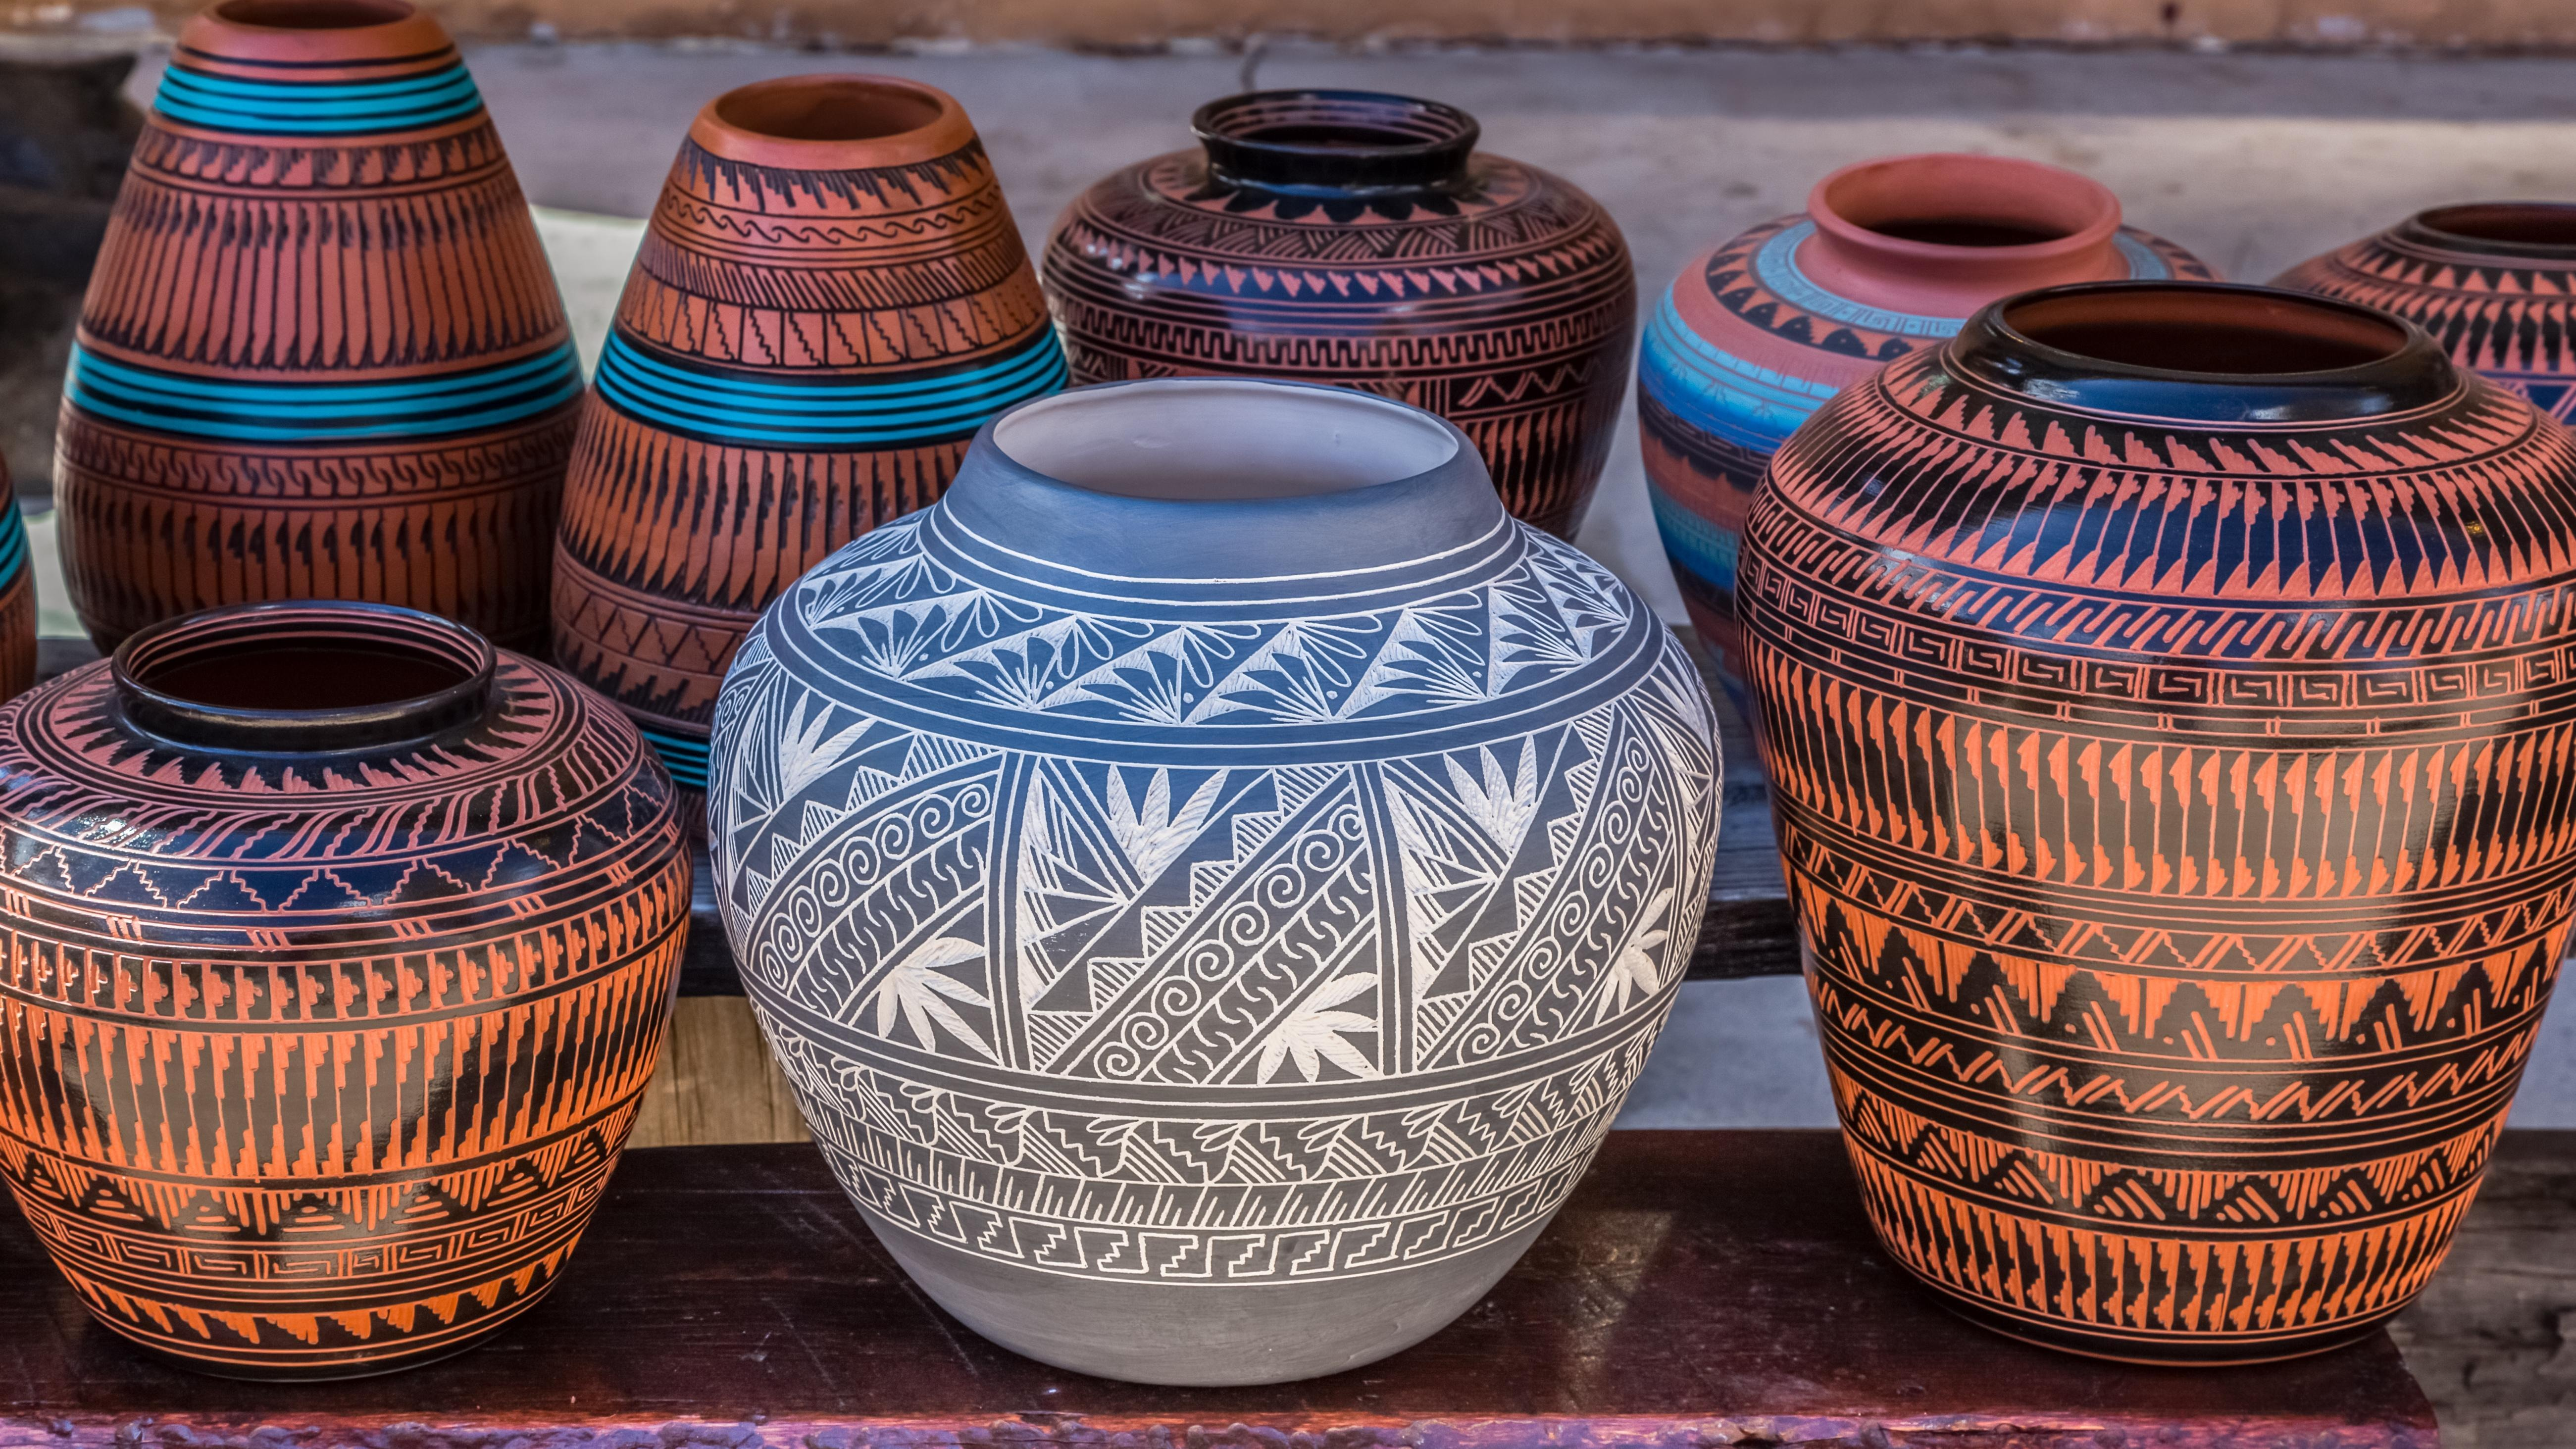 How to Spend 1 Day in Santa Fe